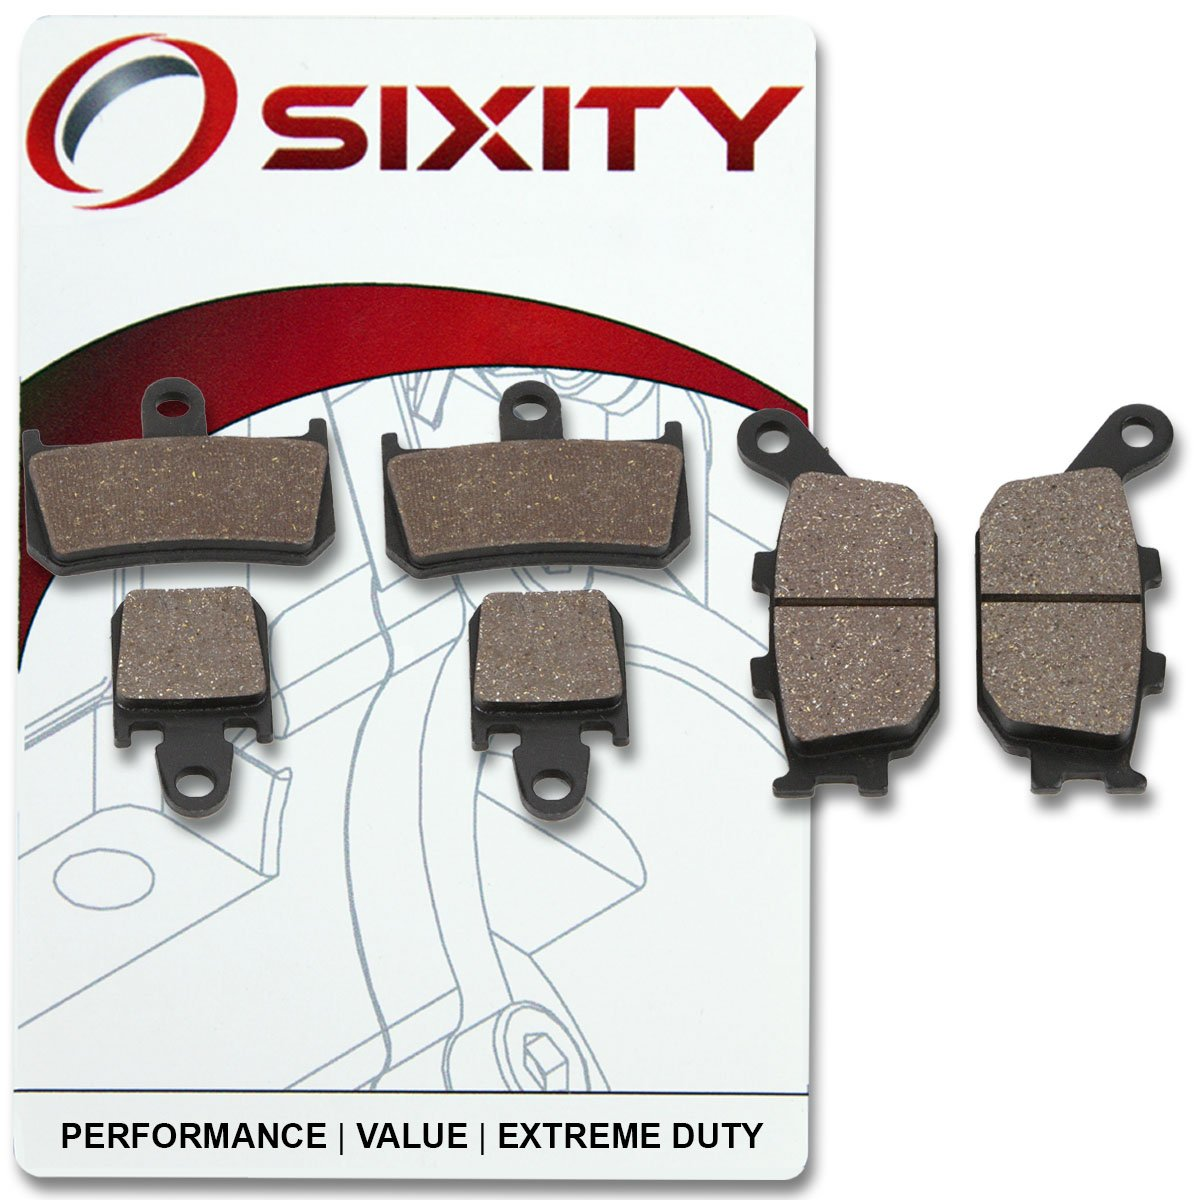 Sixity Front Rear Ceramic Brake Pads 2009-2014 for Yamaha YZF-R1 Set Full Kit 6 Piston Caliper Complete